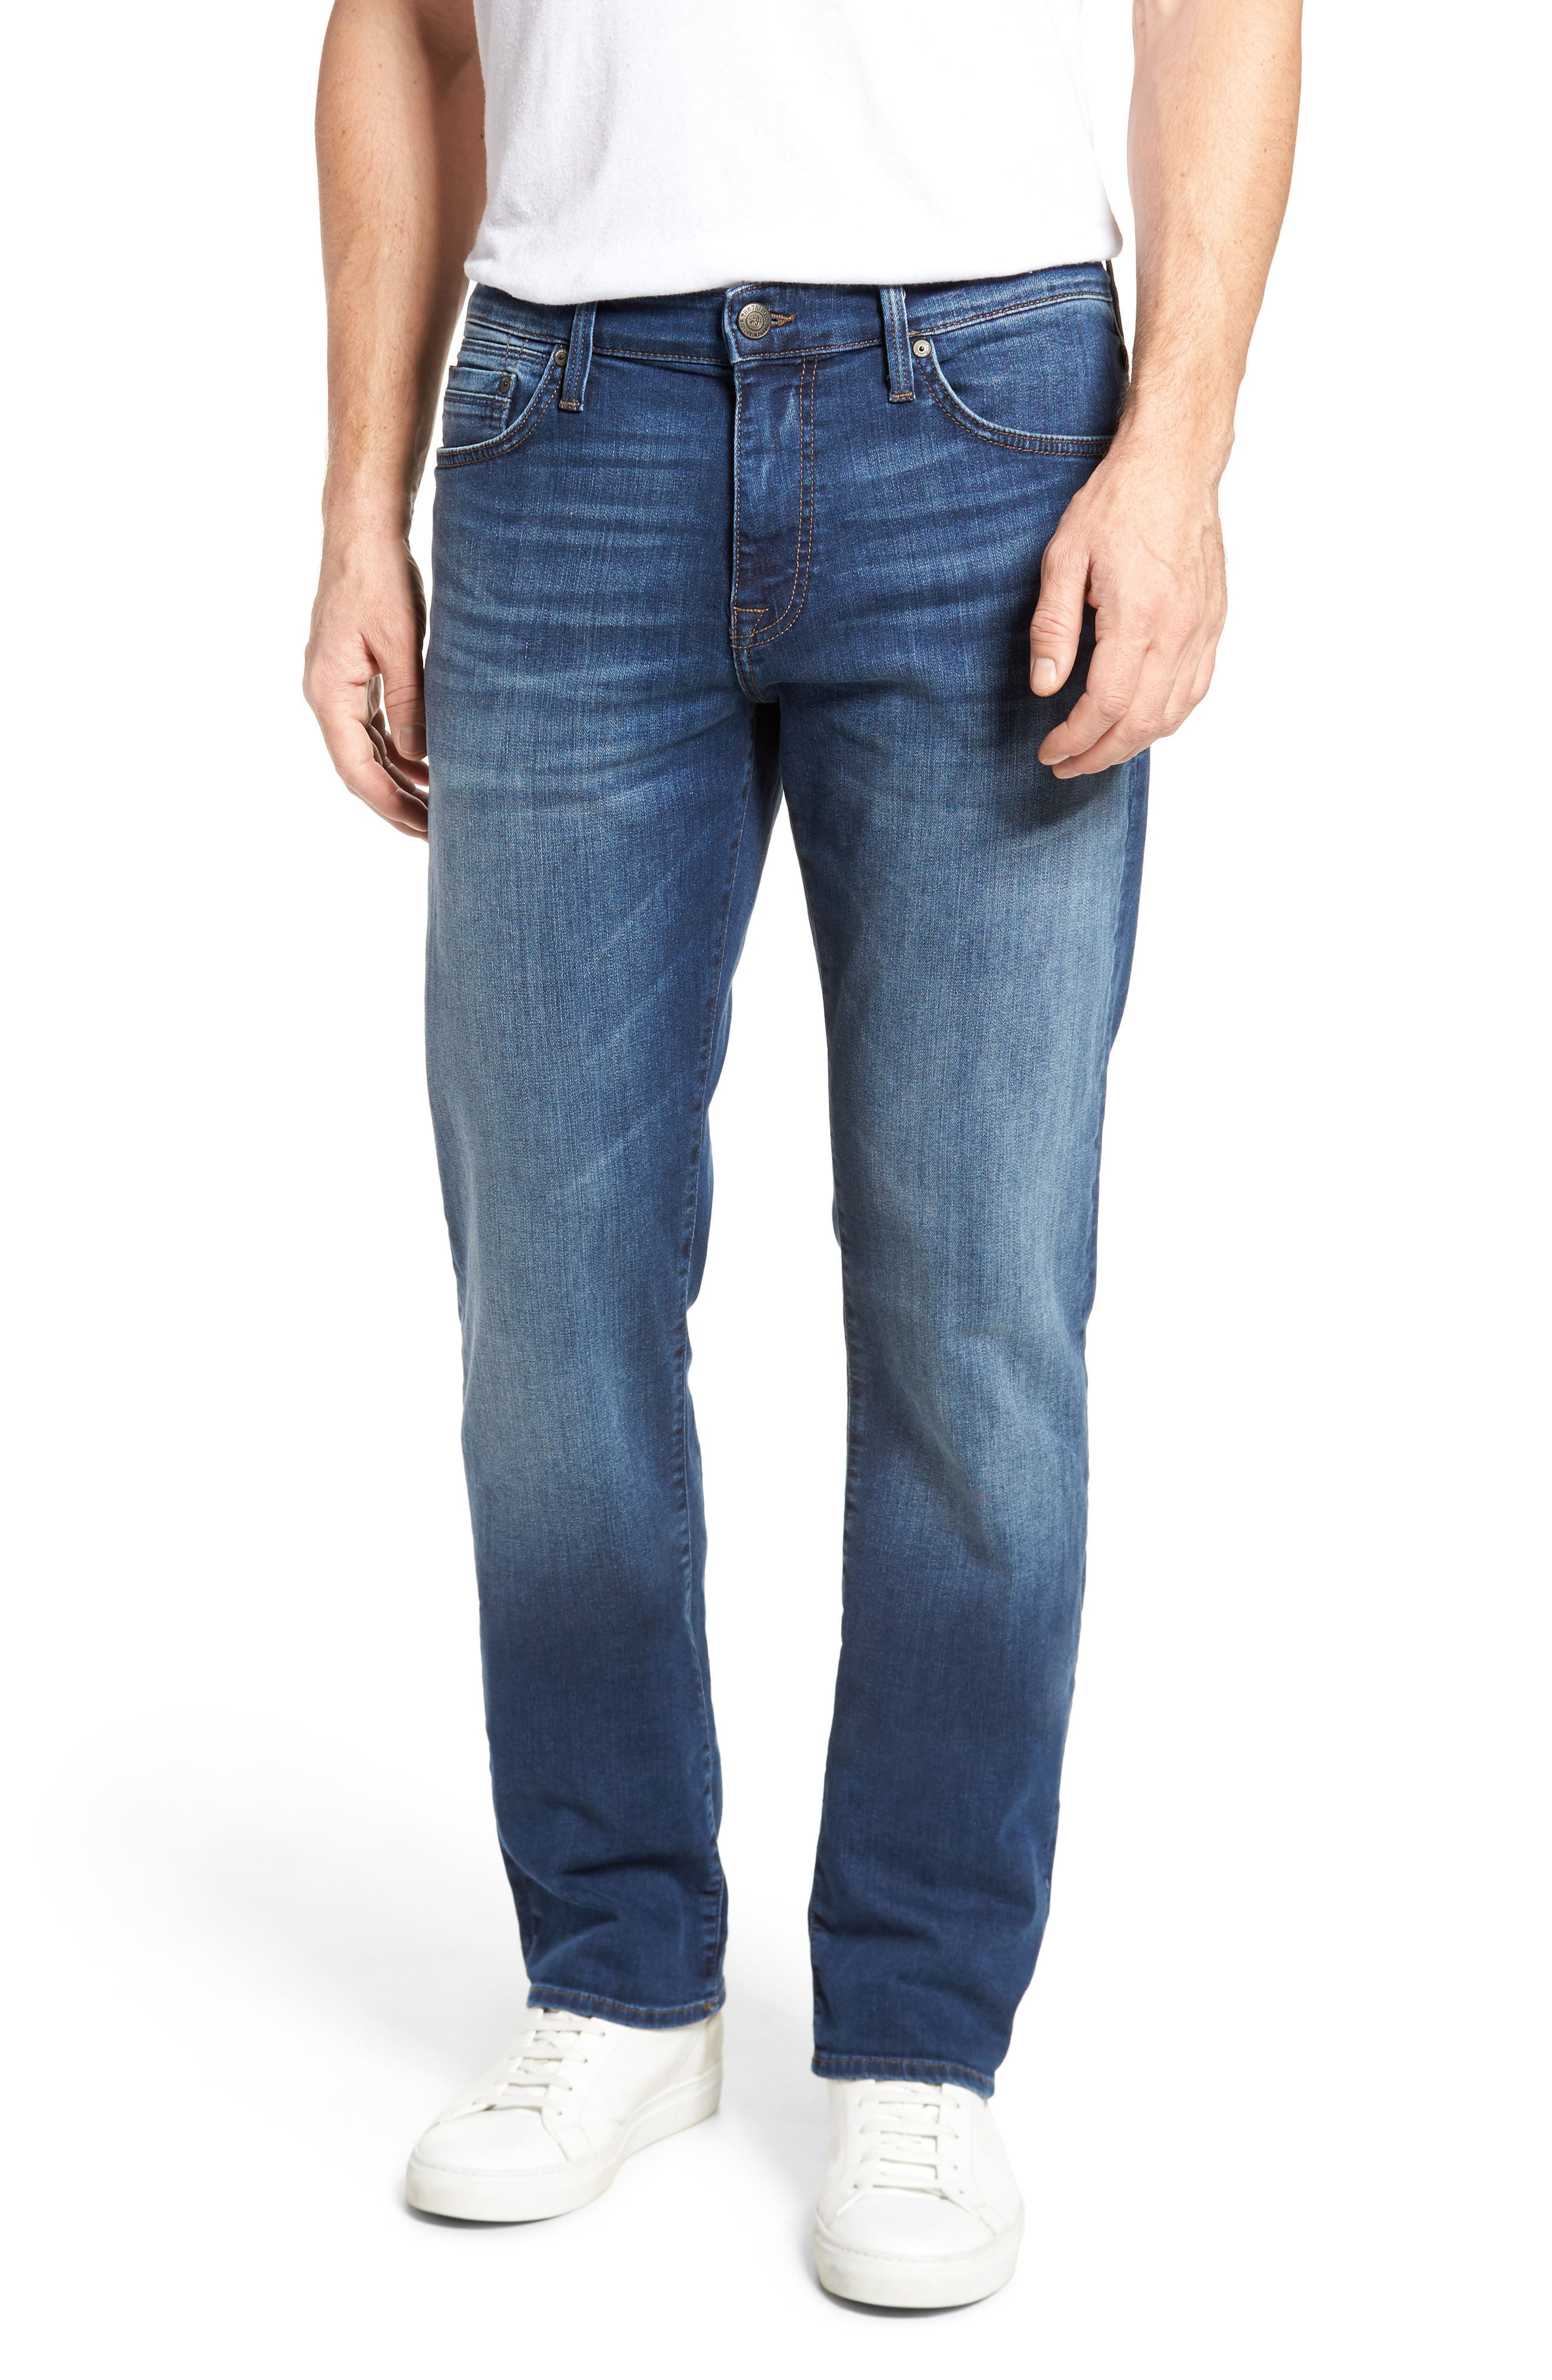 Myles Straight Fit Jeans,                         Main,                         color, 401